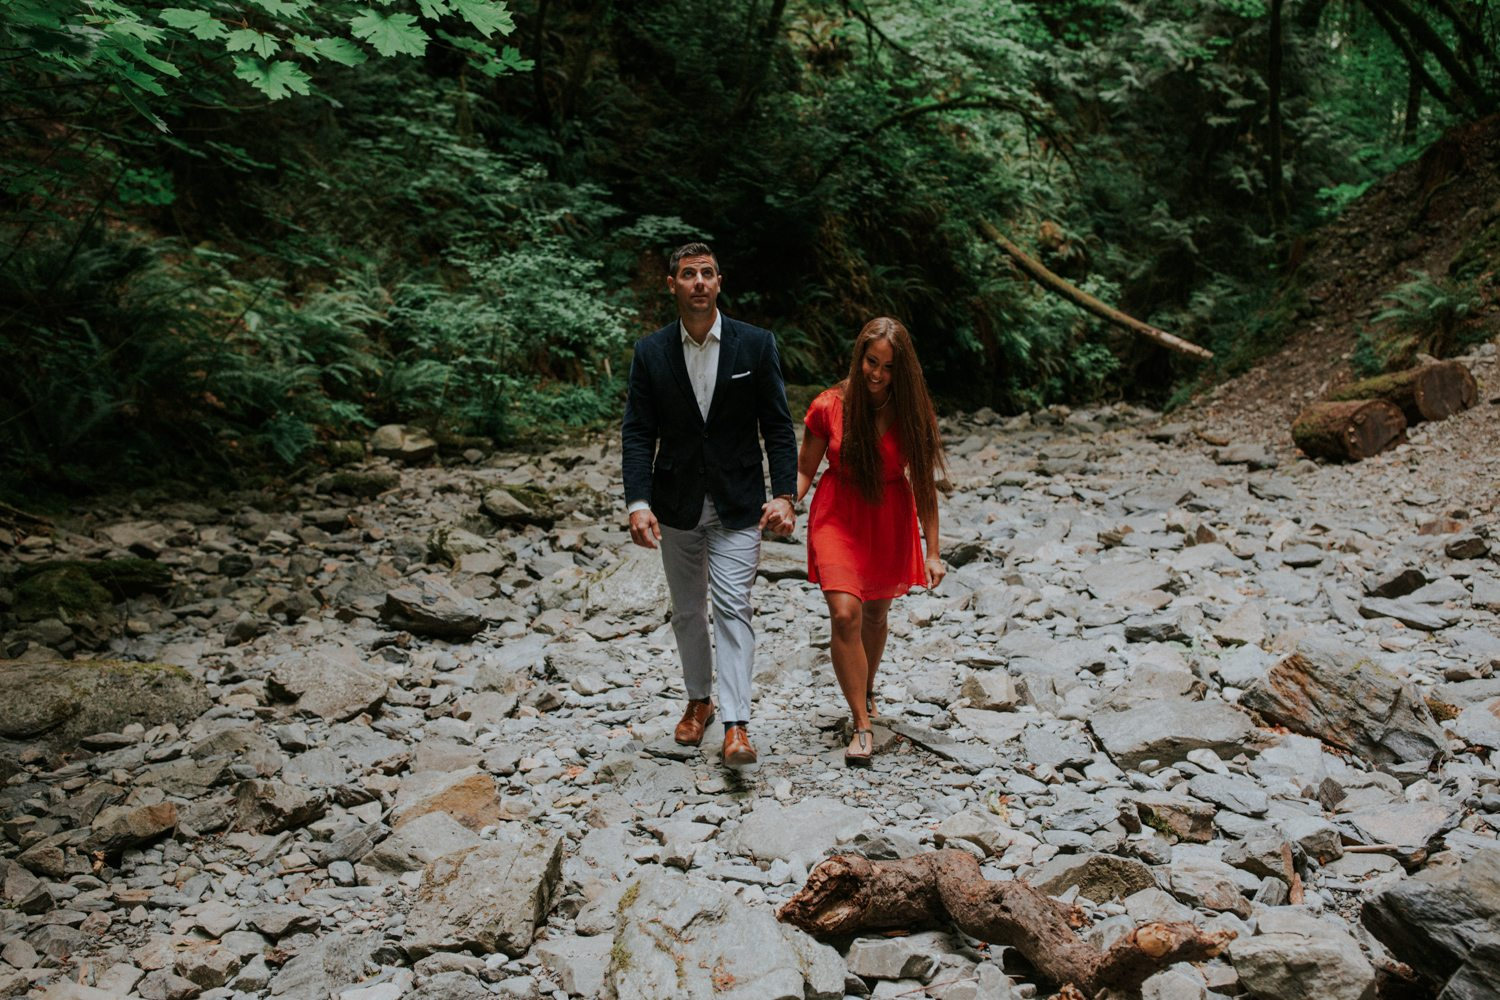 Aaron + Jess  // Victoria Engagement Photographer, Luke Liable  // Victoria & Vancouver Island Wedding Photographer